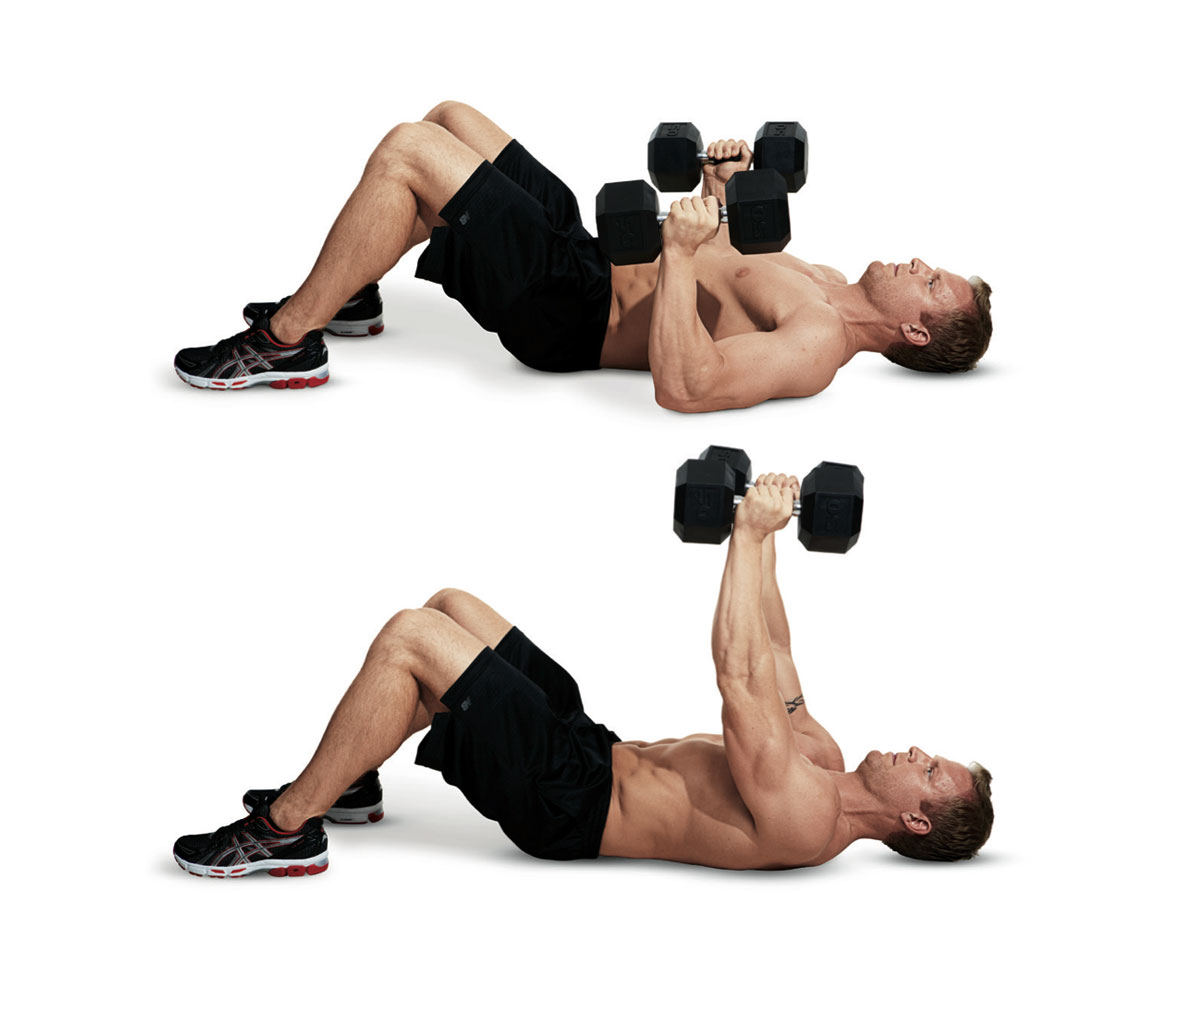 Chest press for muscle growth